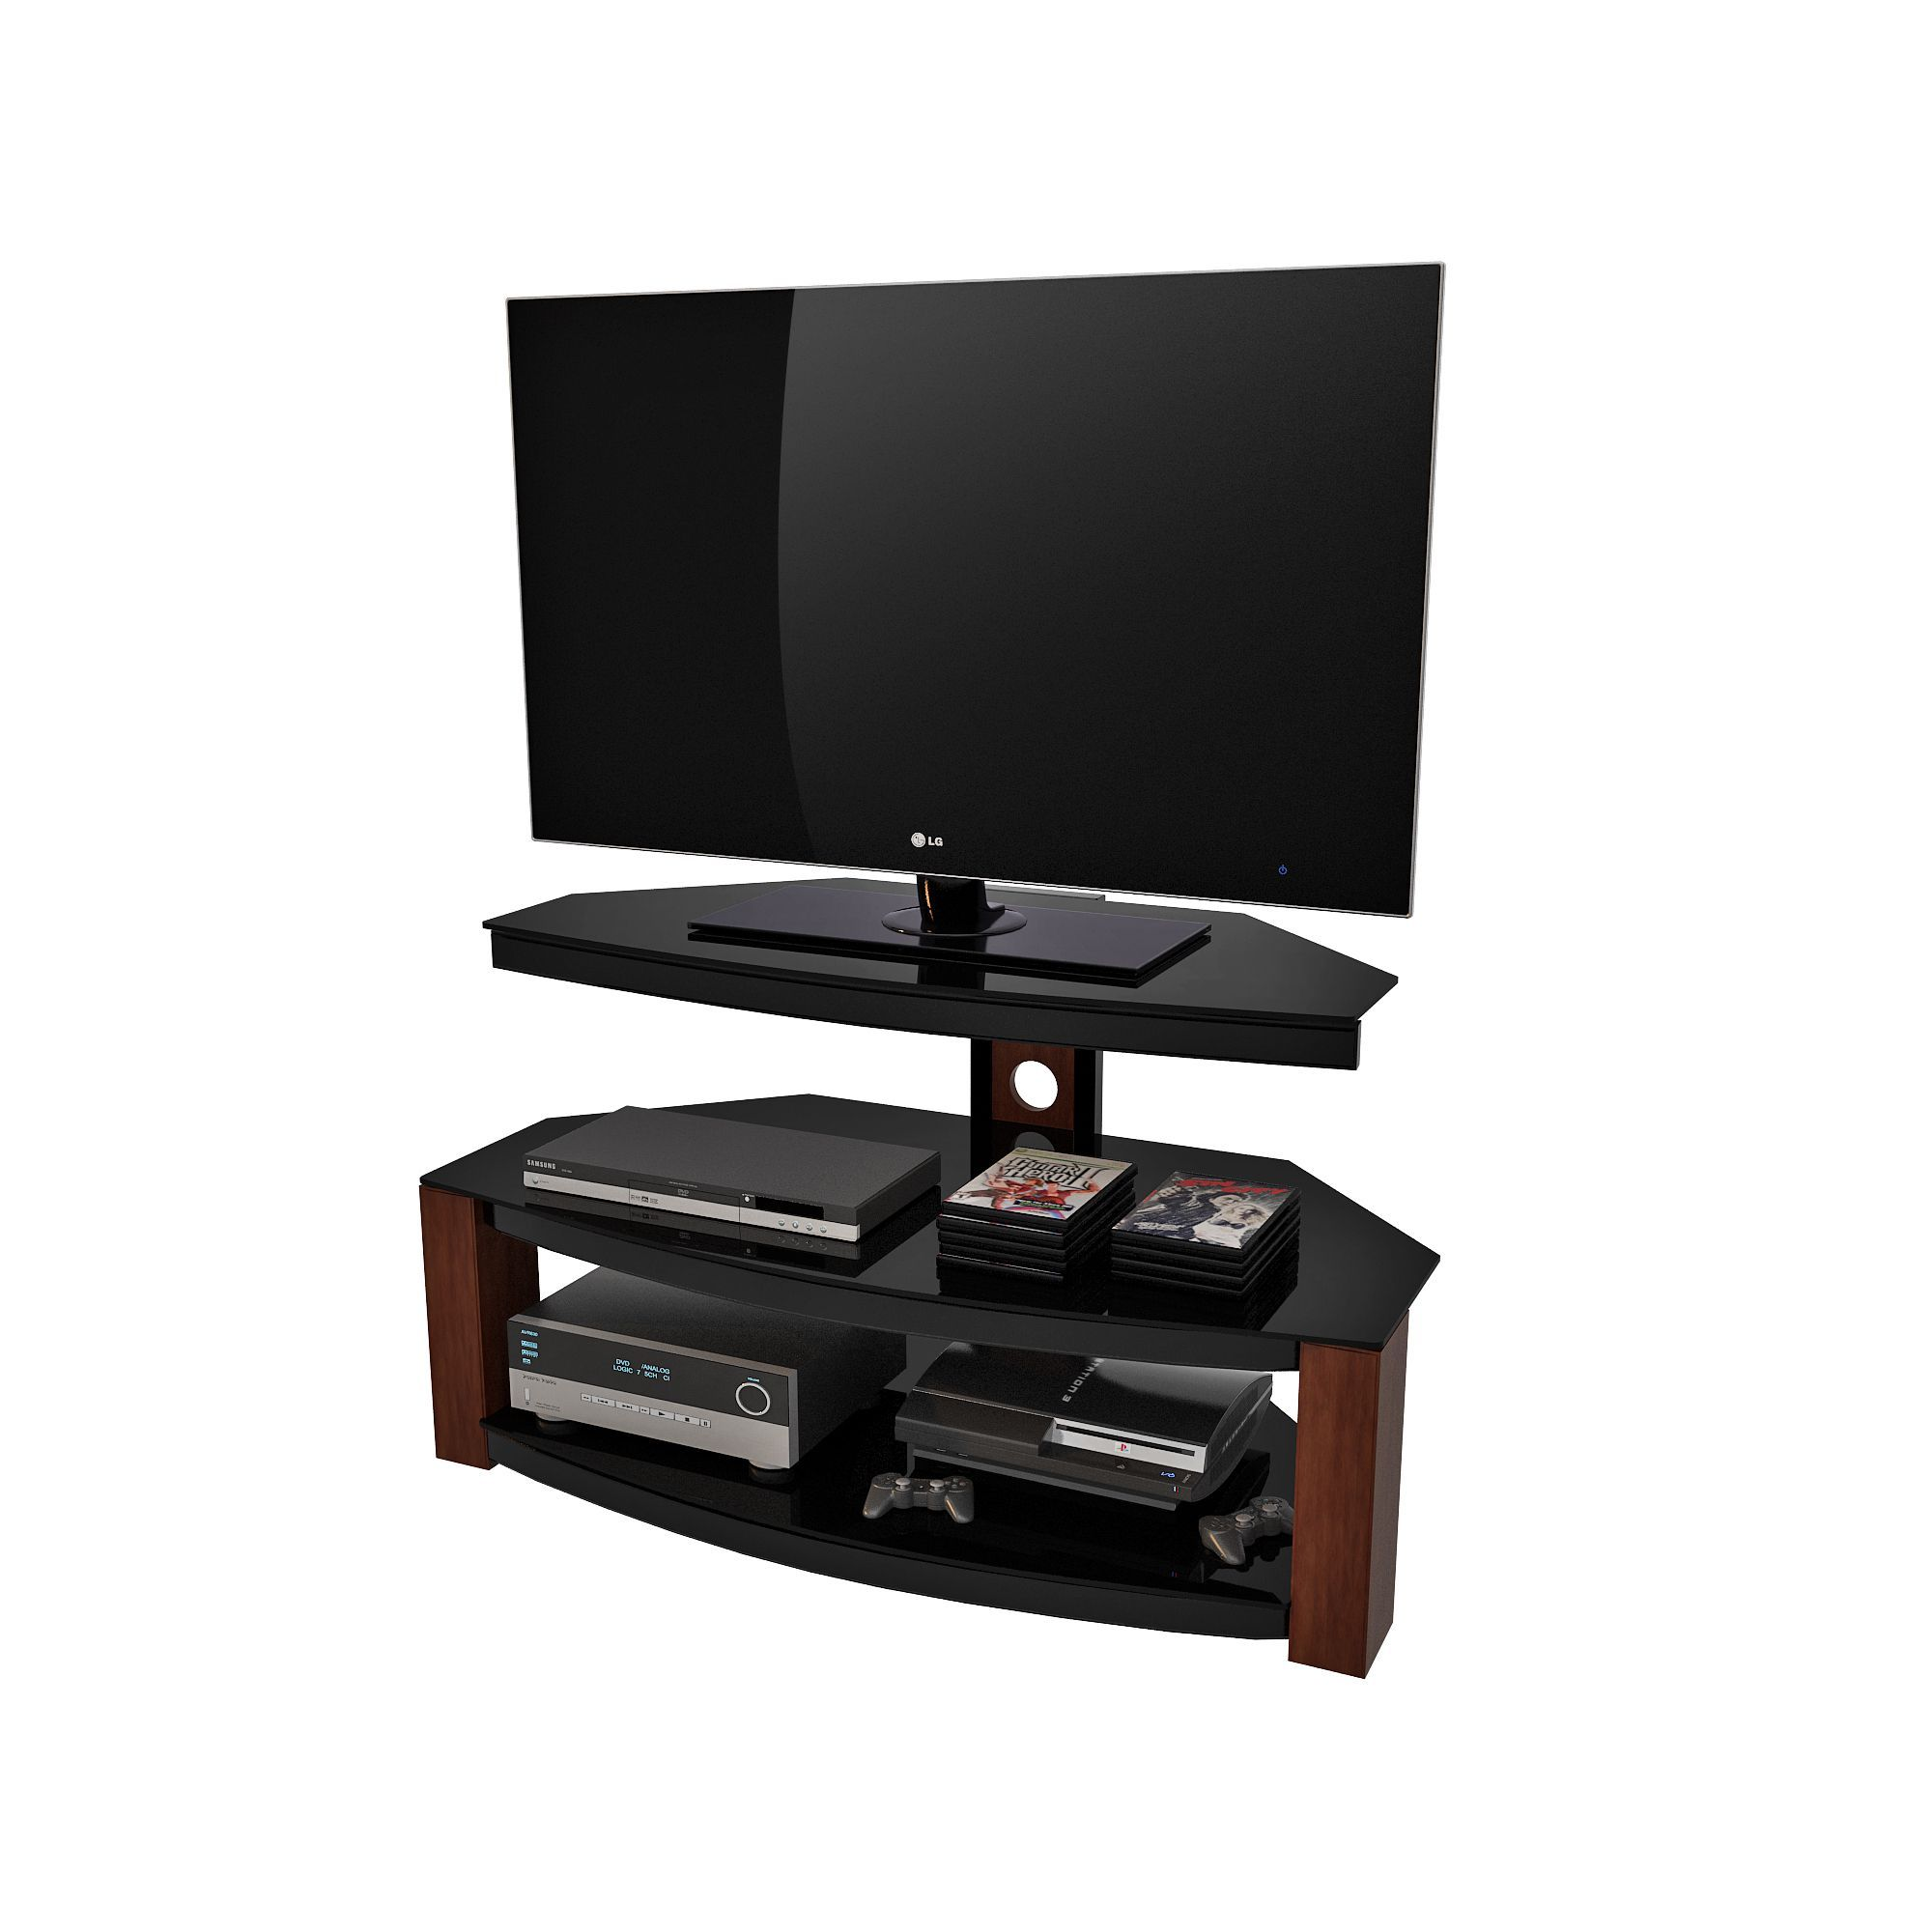 Rhine Cherry 40 Inch Tv Stand Products Pinterest 40 Inch Tv